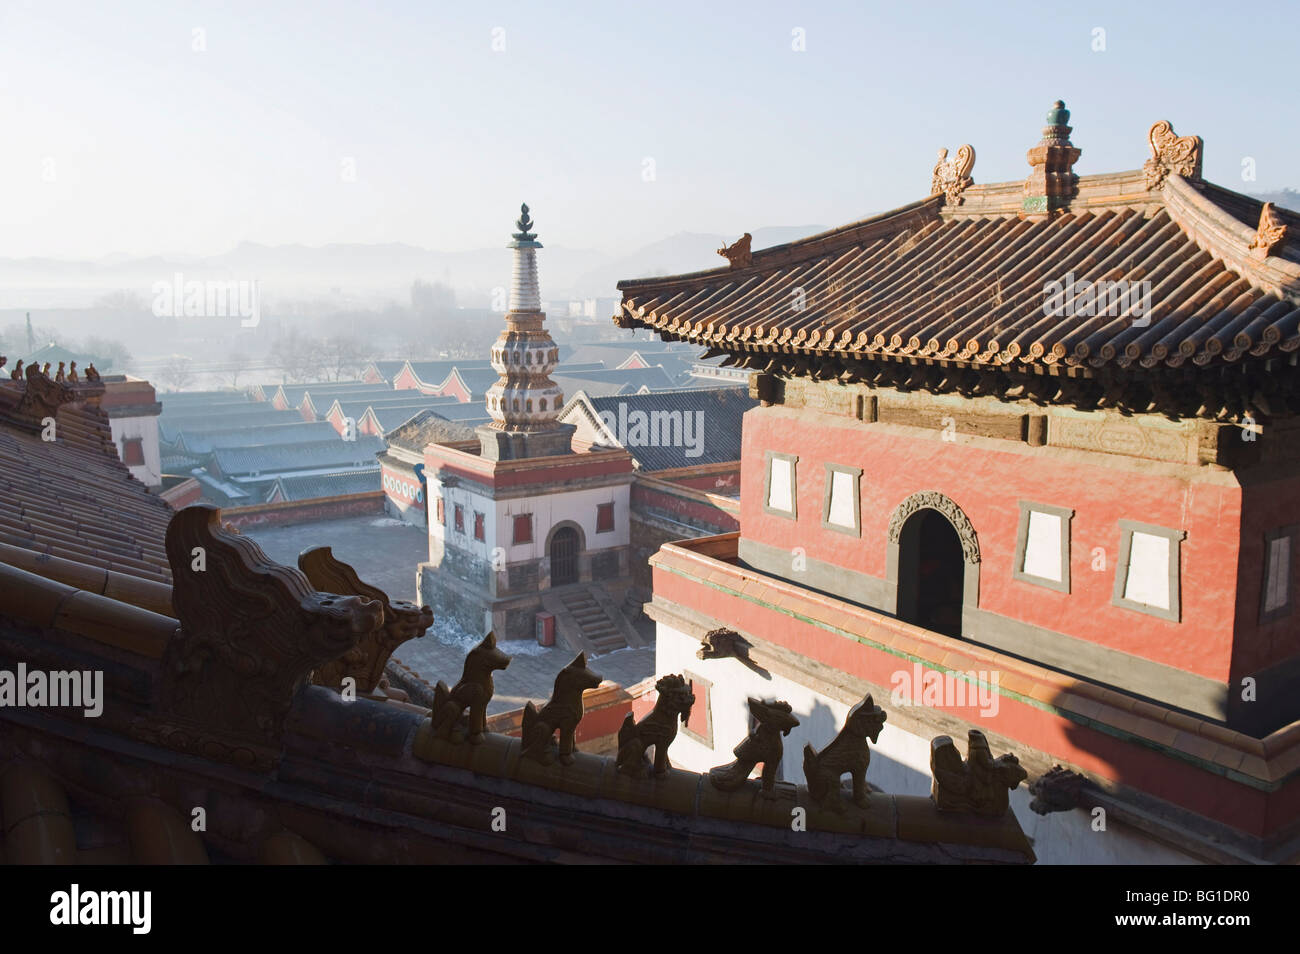 Puning Si outer temple dating from 1755, Chengde city, UNESCO World Heritage Site, Hebei Province, China, Asia - Stock Image